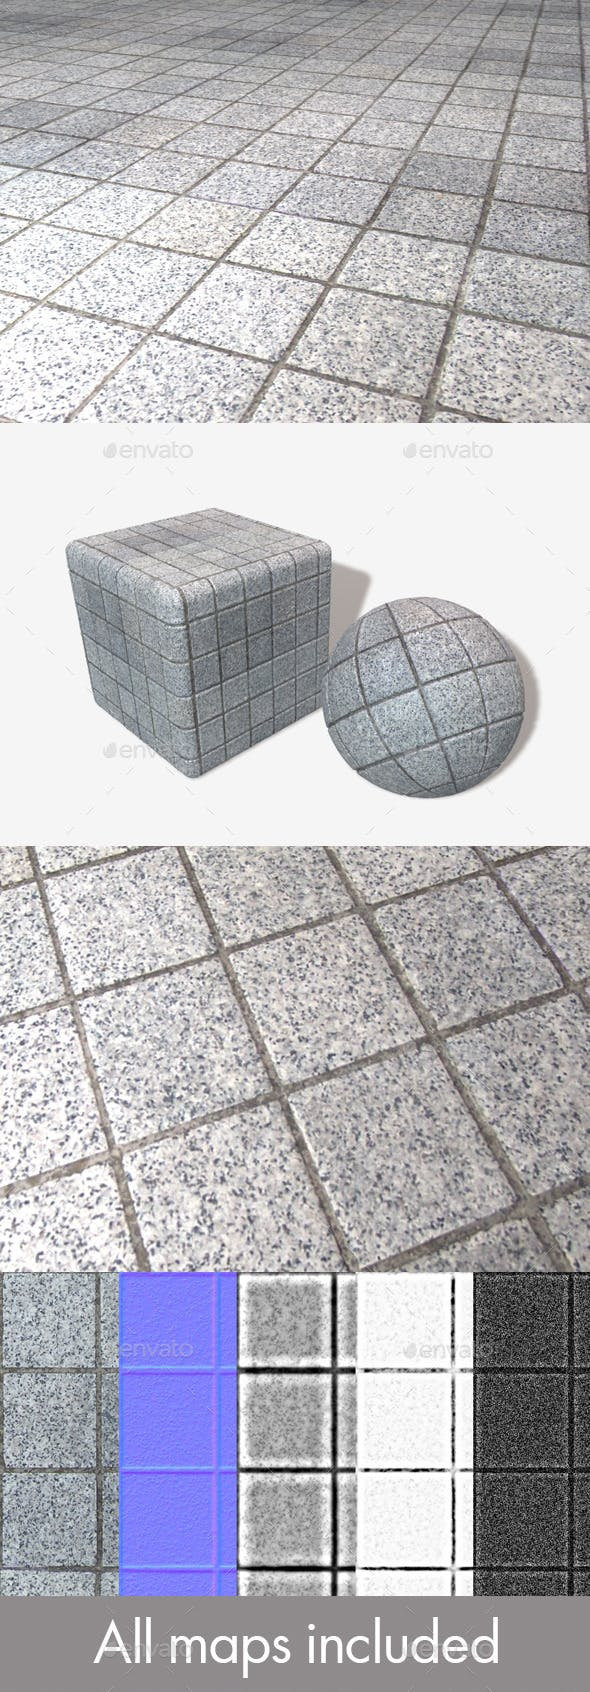 Outdoor Square Floor Tiles Seamless Texture - 3DOcean Item for Sale